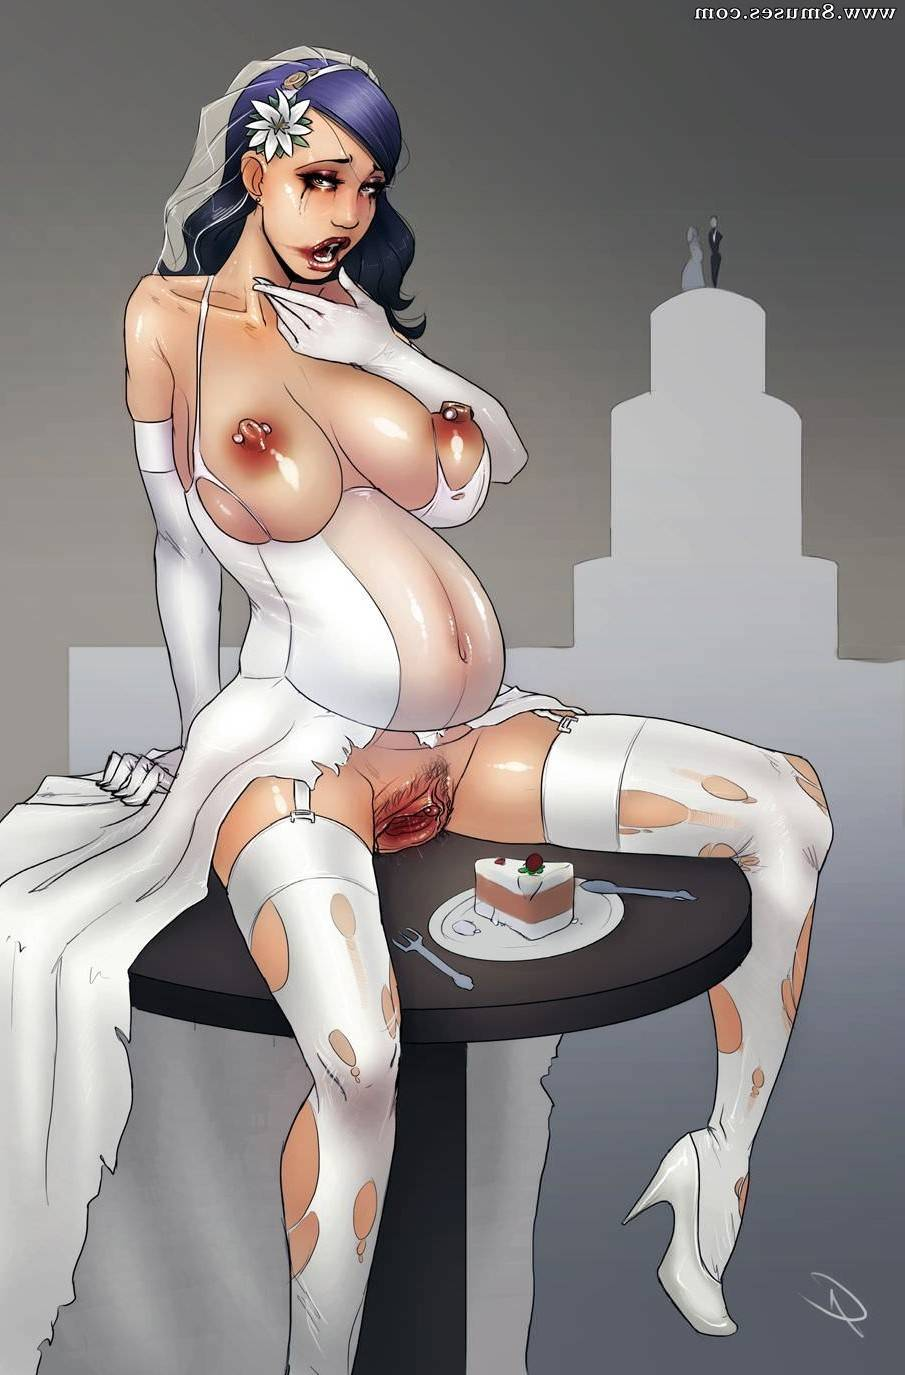 Incase-Comics/Artwork Artwork__8muses_-_Sex_and_Porn_Comics_45.jpg